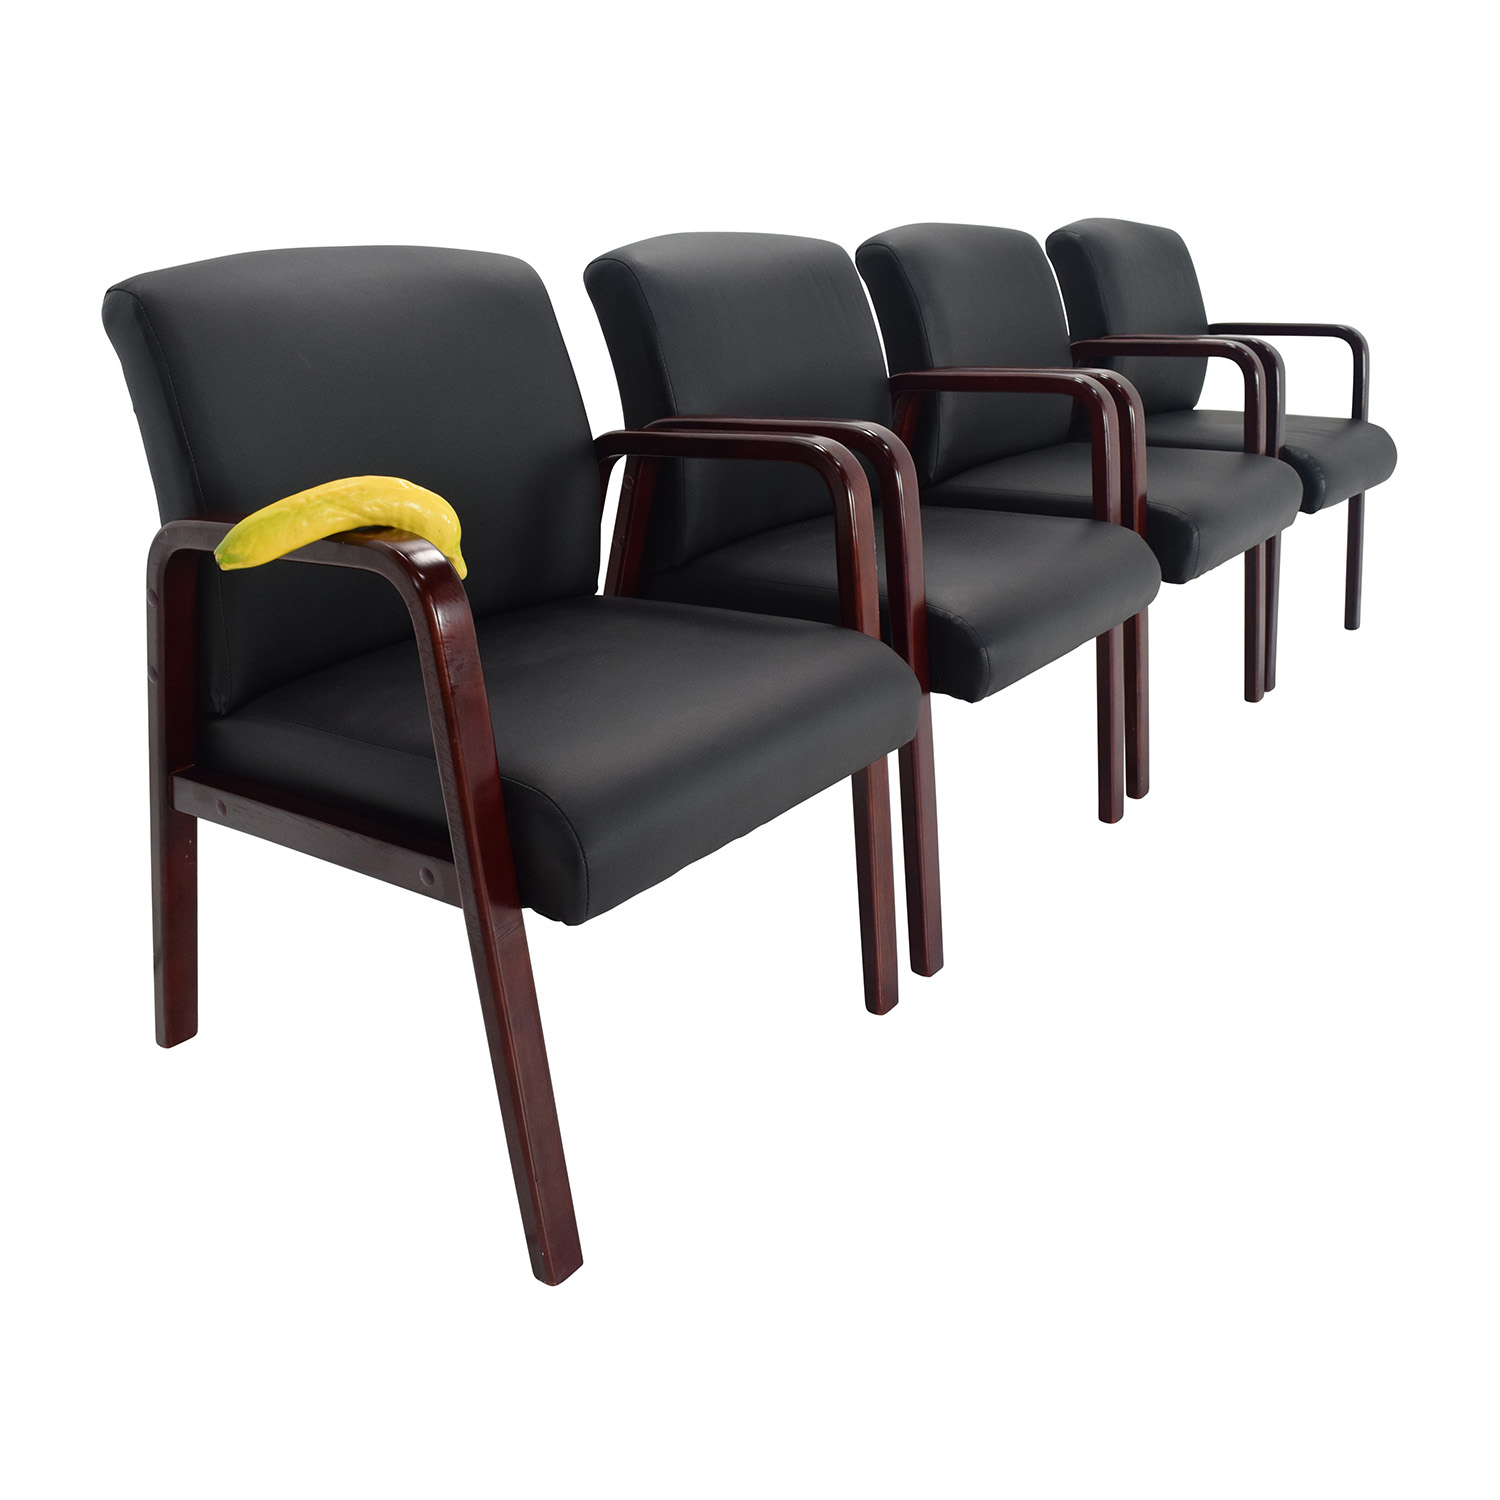 Office Max Set Of 4 Office Chairs Discount